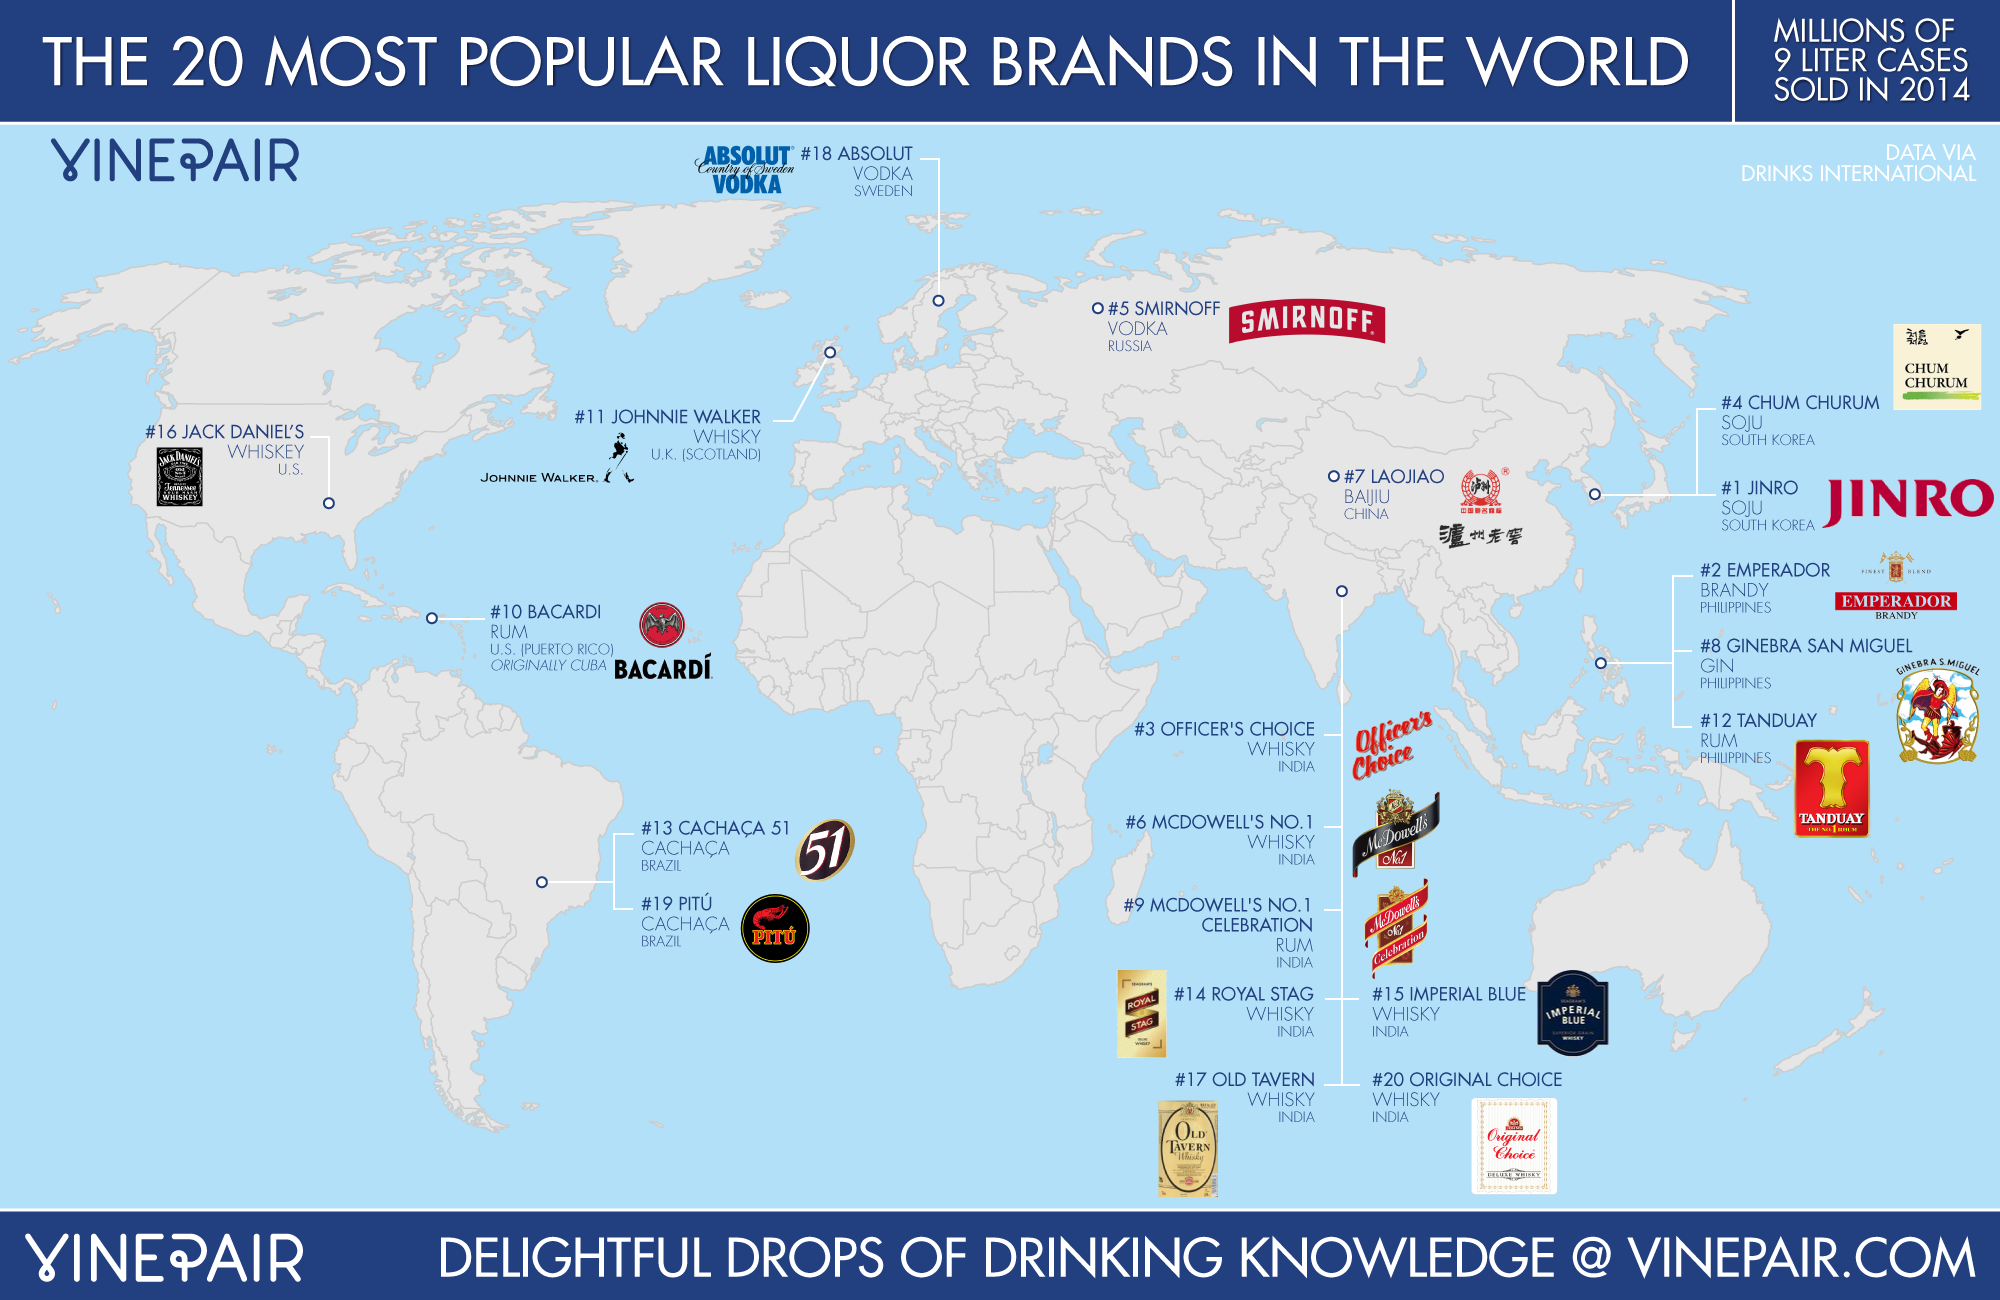 The 100 Best Selling Liquor Brands In The World